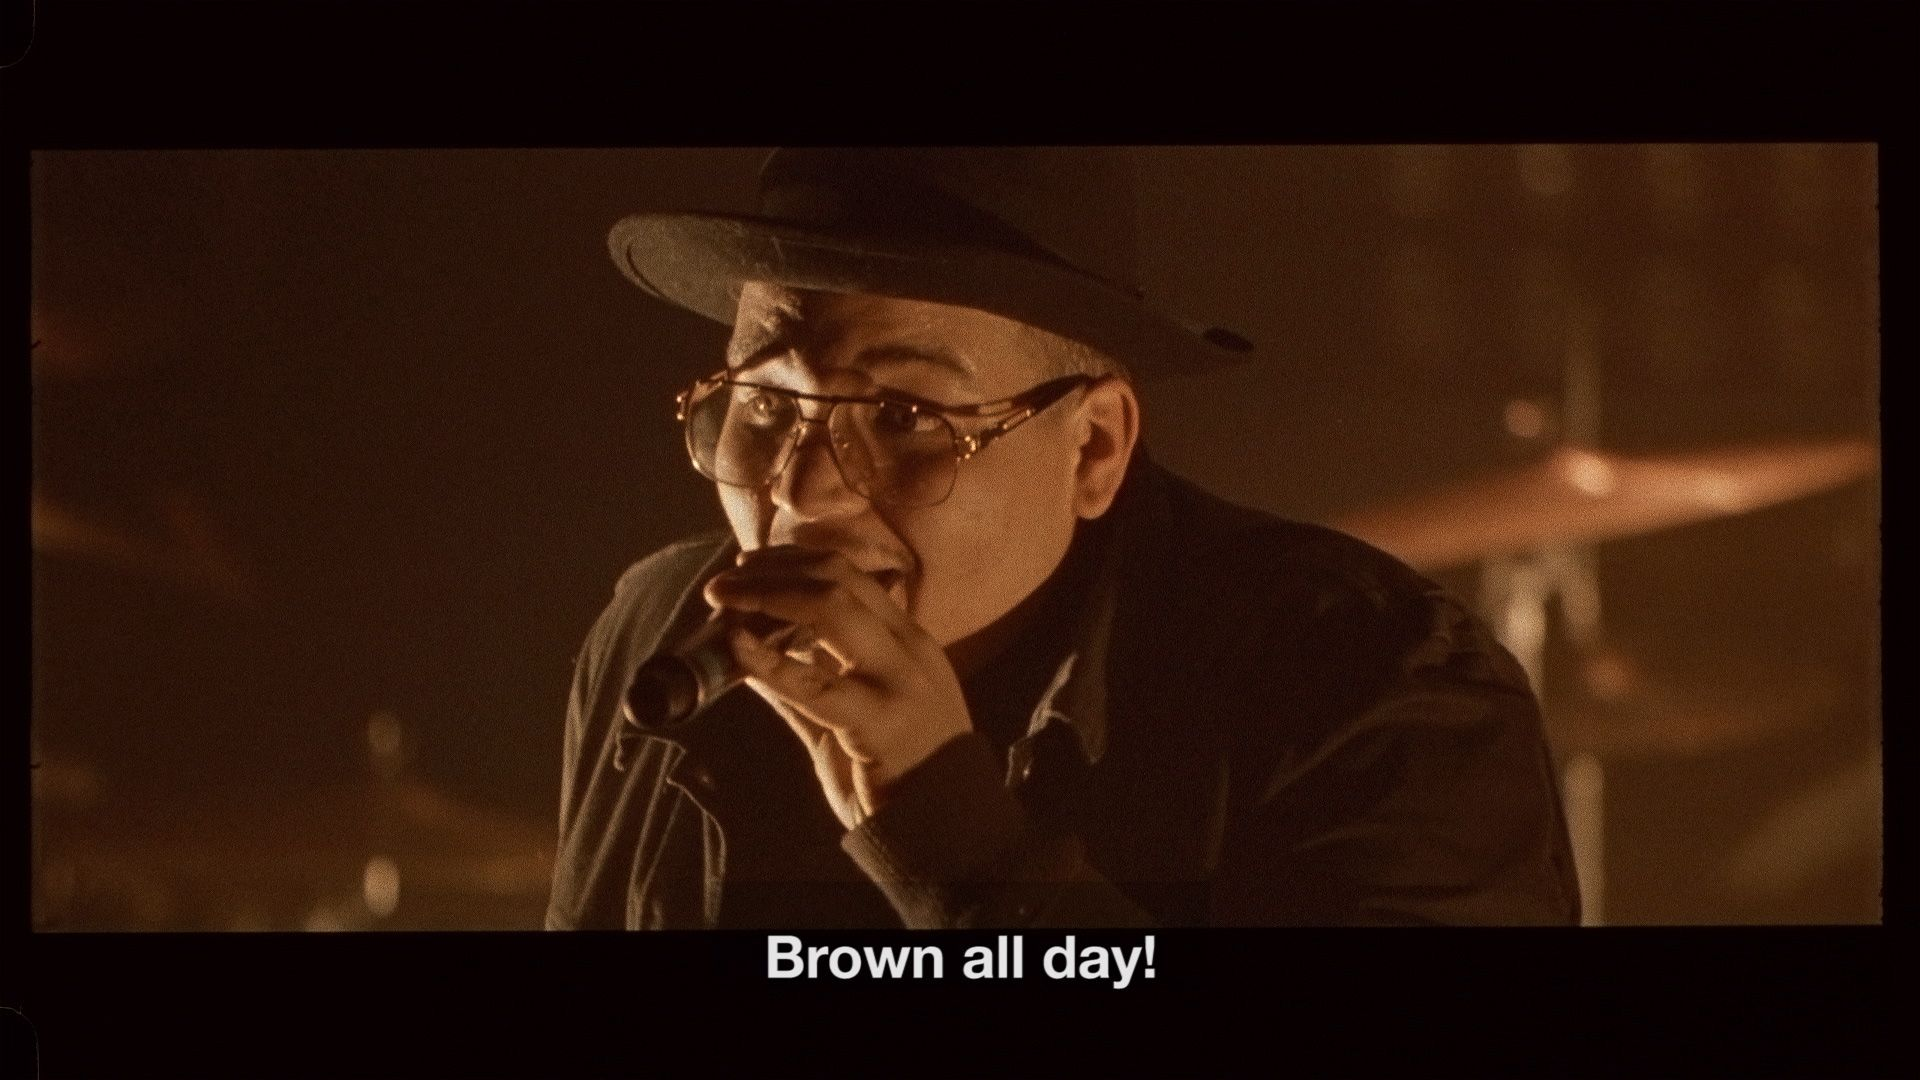 """singer Brown on stage singing """"Brown all day"""" bathed in soft orange light for L'Osstidfilm documentary filmed by Vincent Ruel-Cote from Les Gamins about L'Osstidtour"""